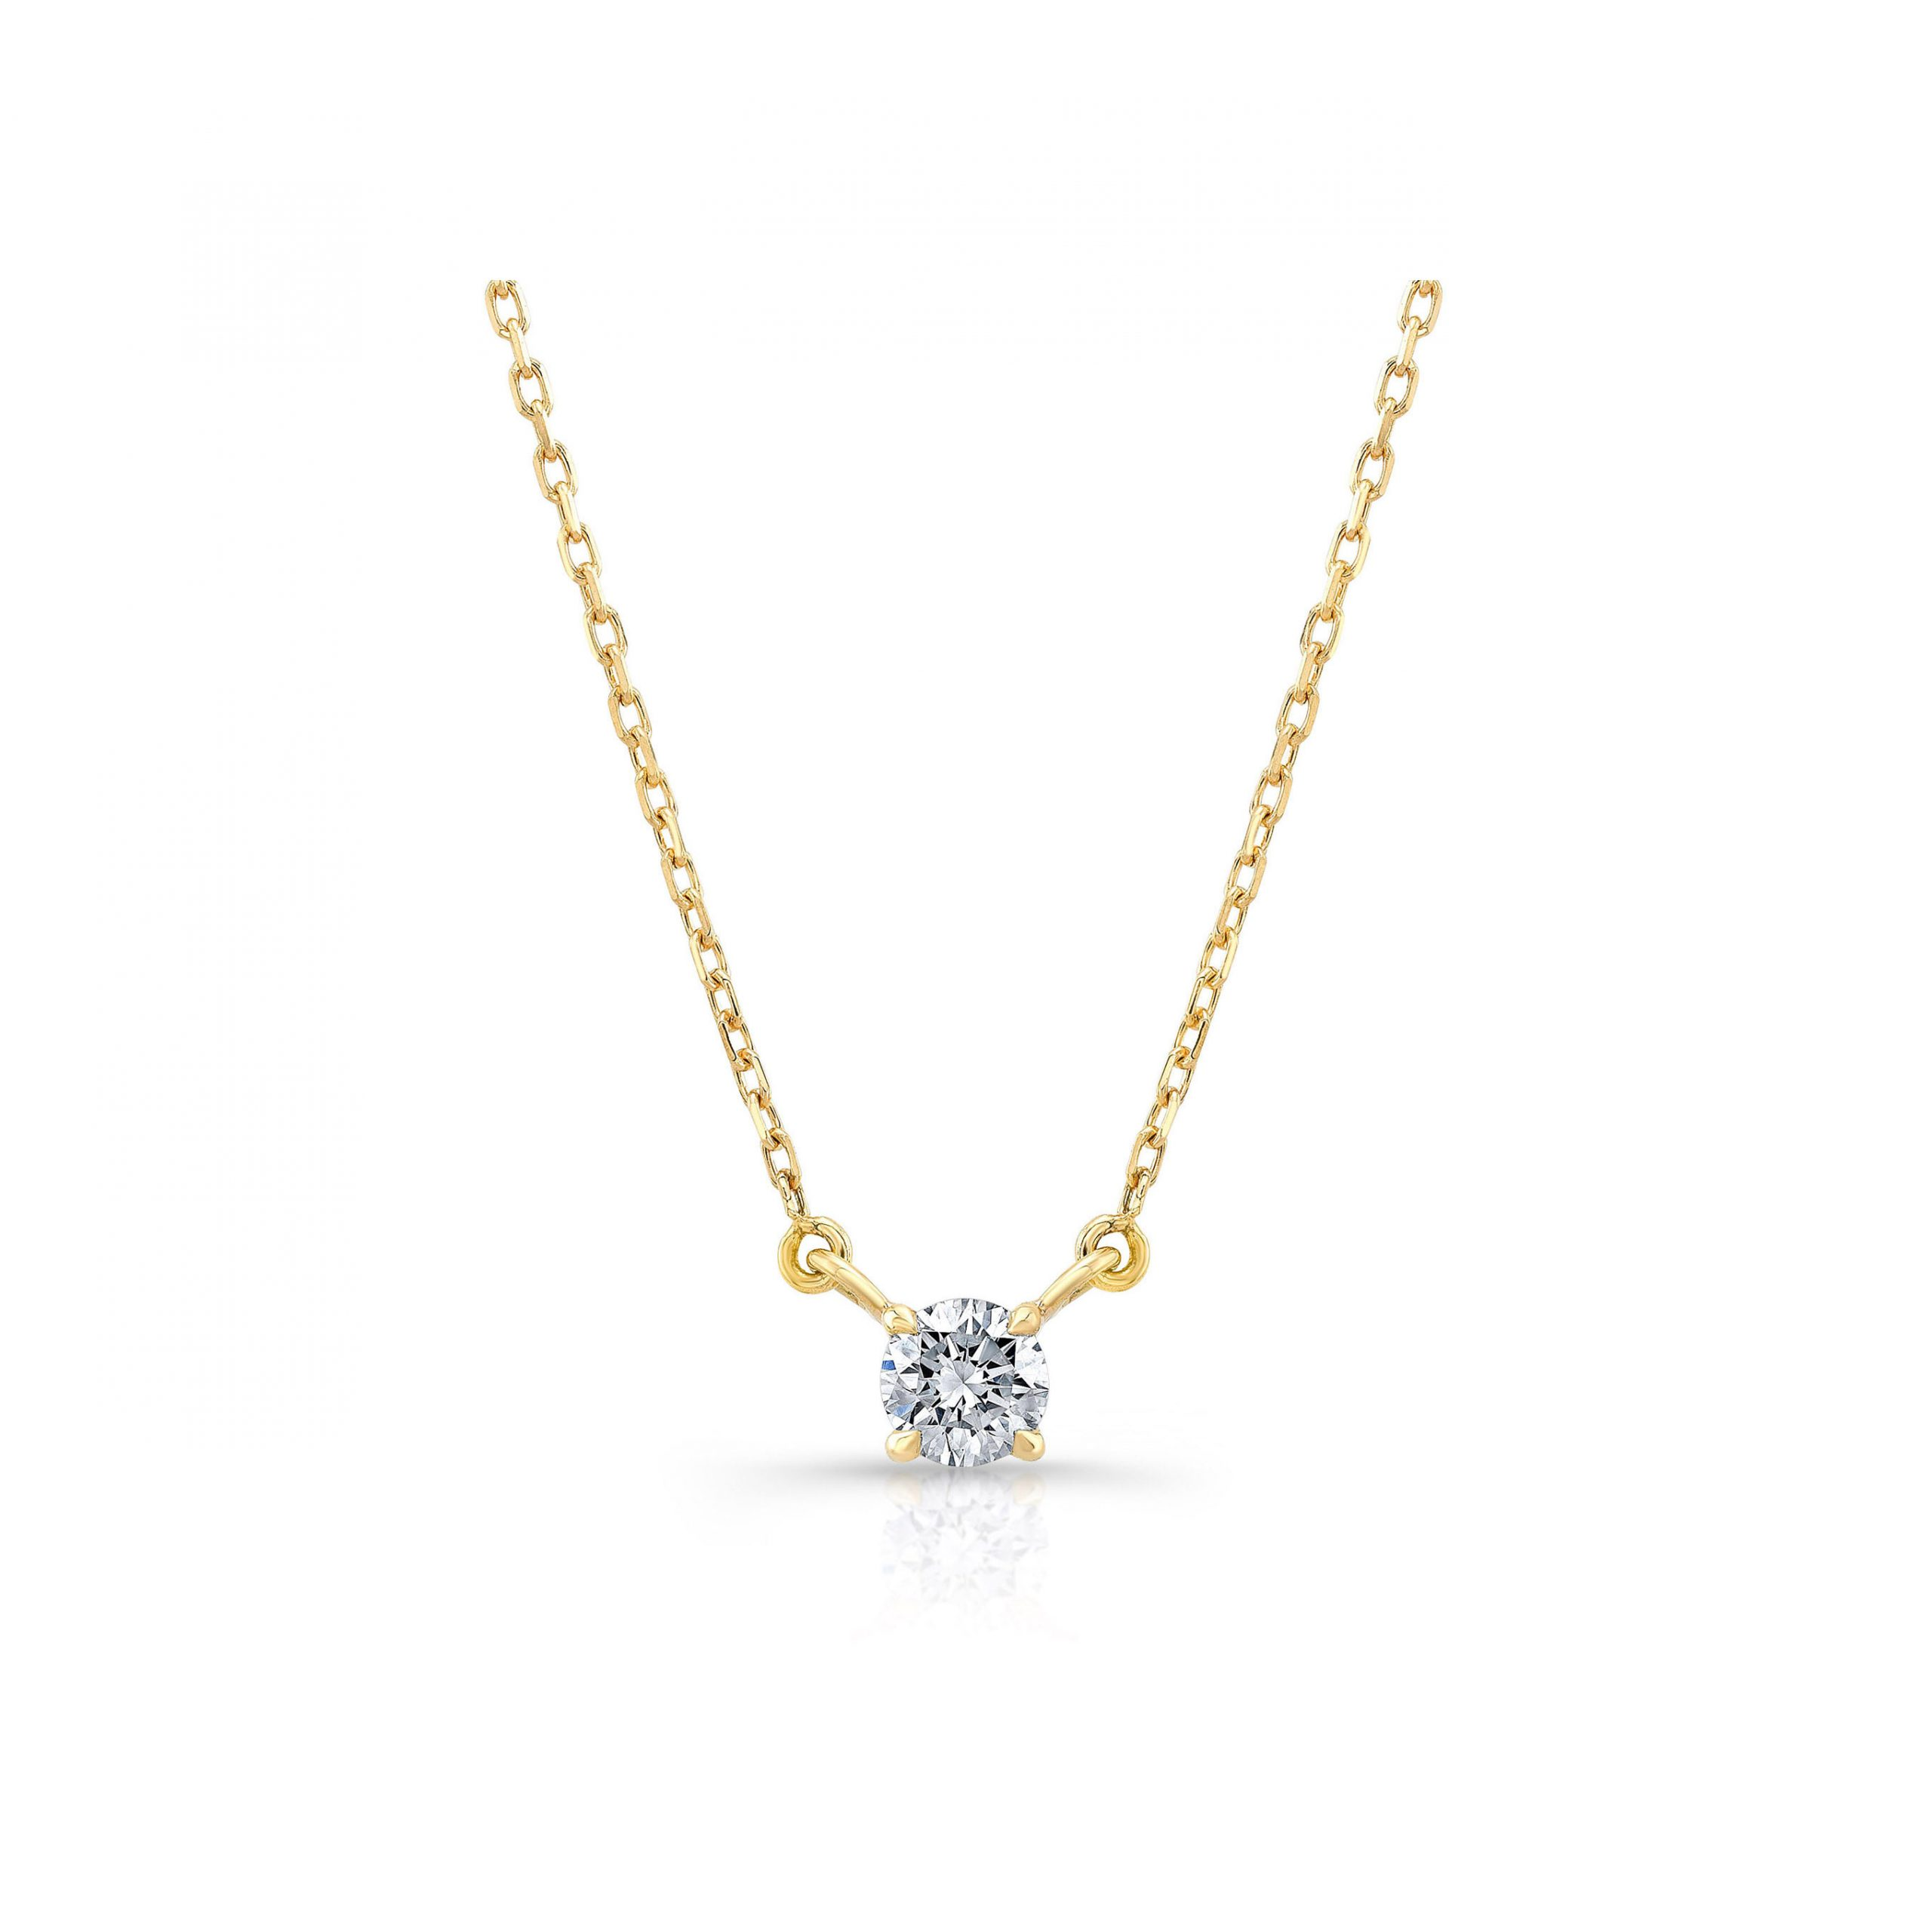 La Petite Round Brilliant Diamond Necklace in 18k Yellow Gold Front View by Oui by Jean Dousset